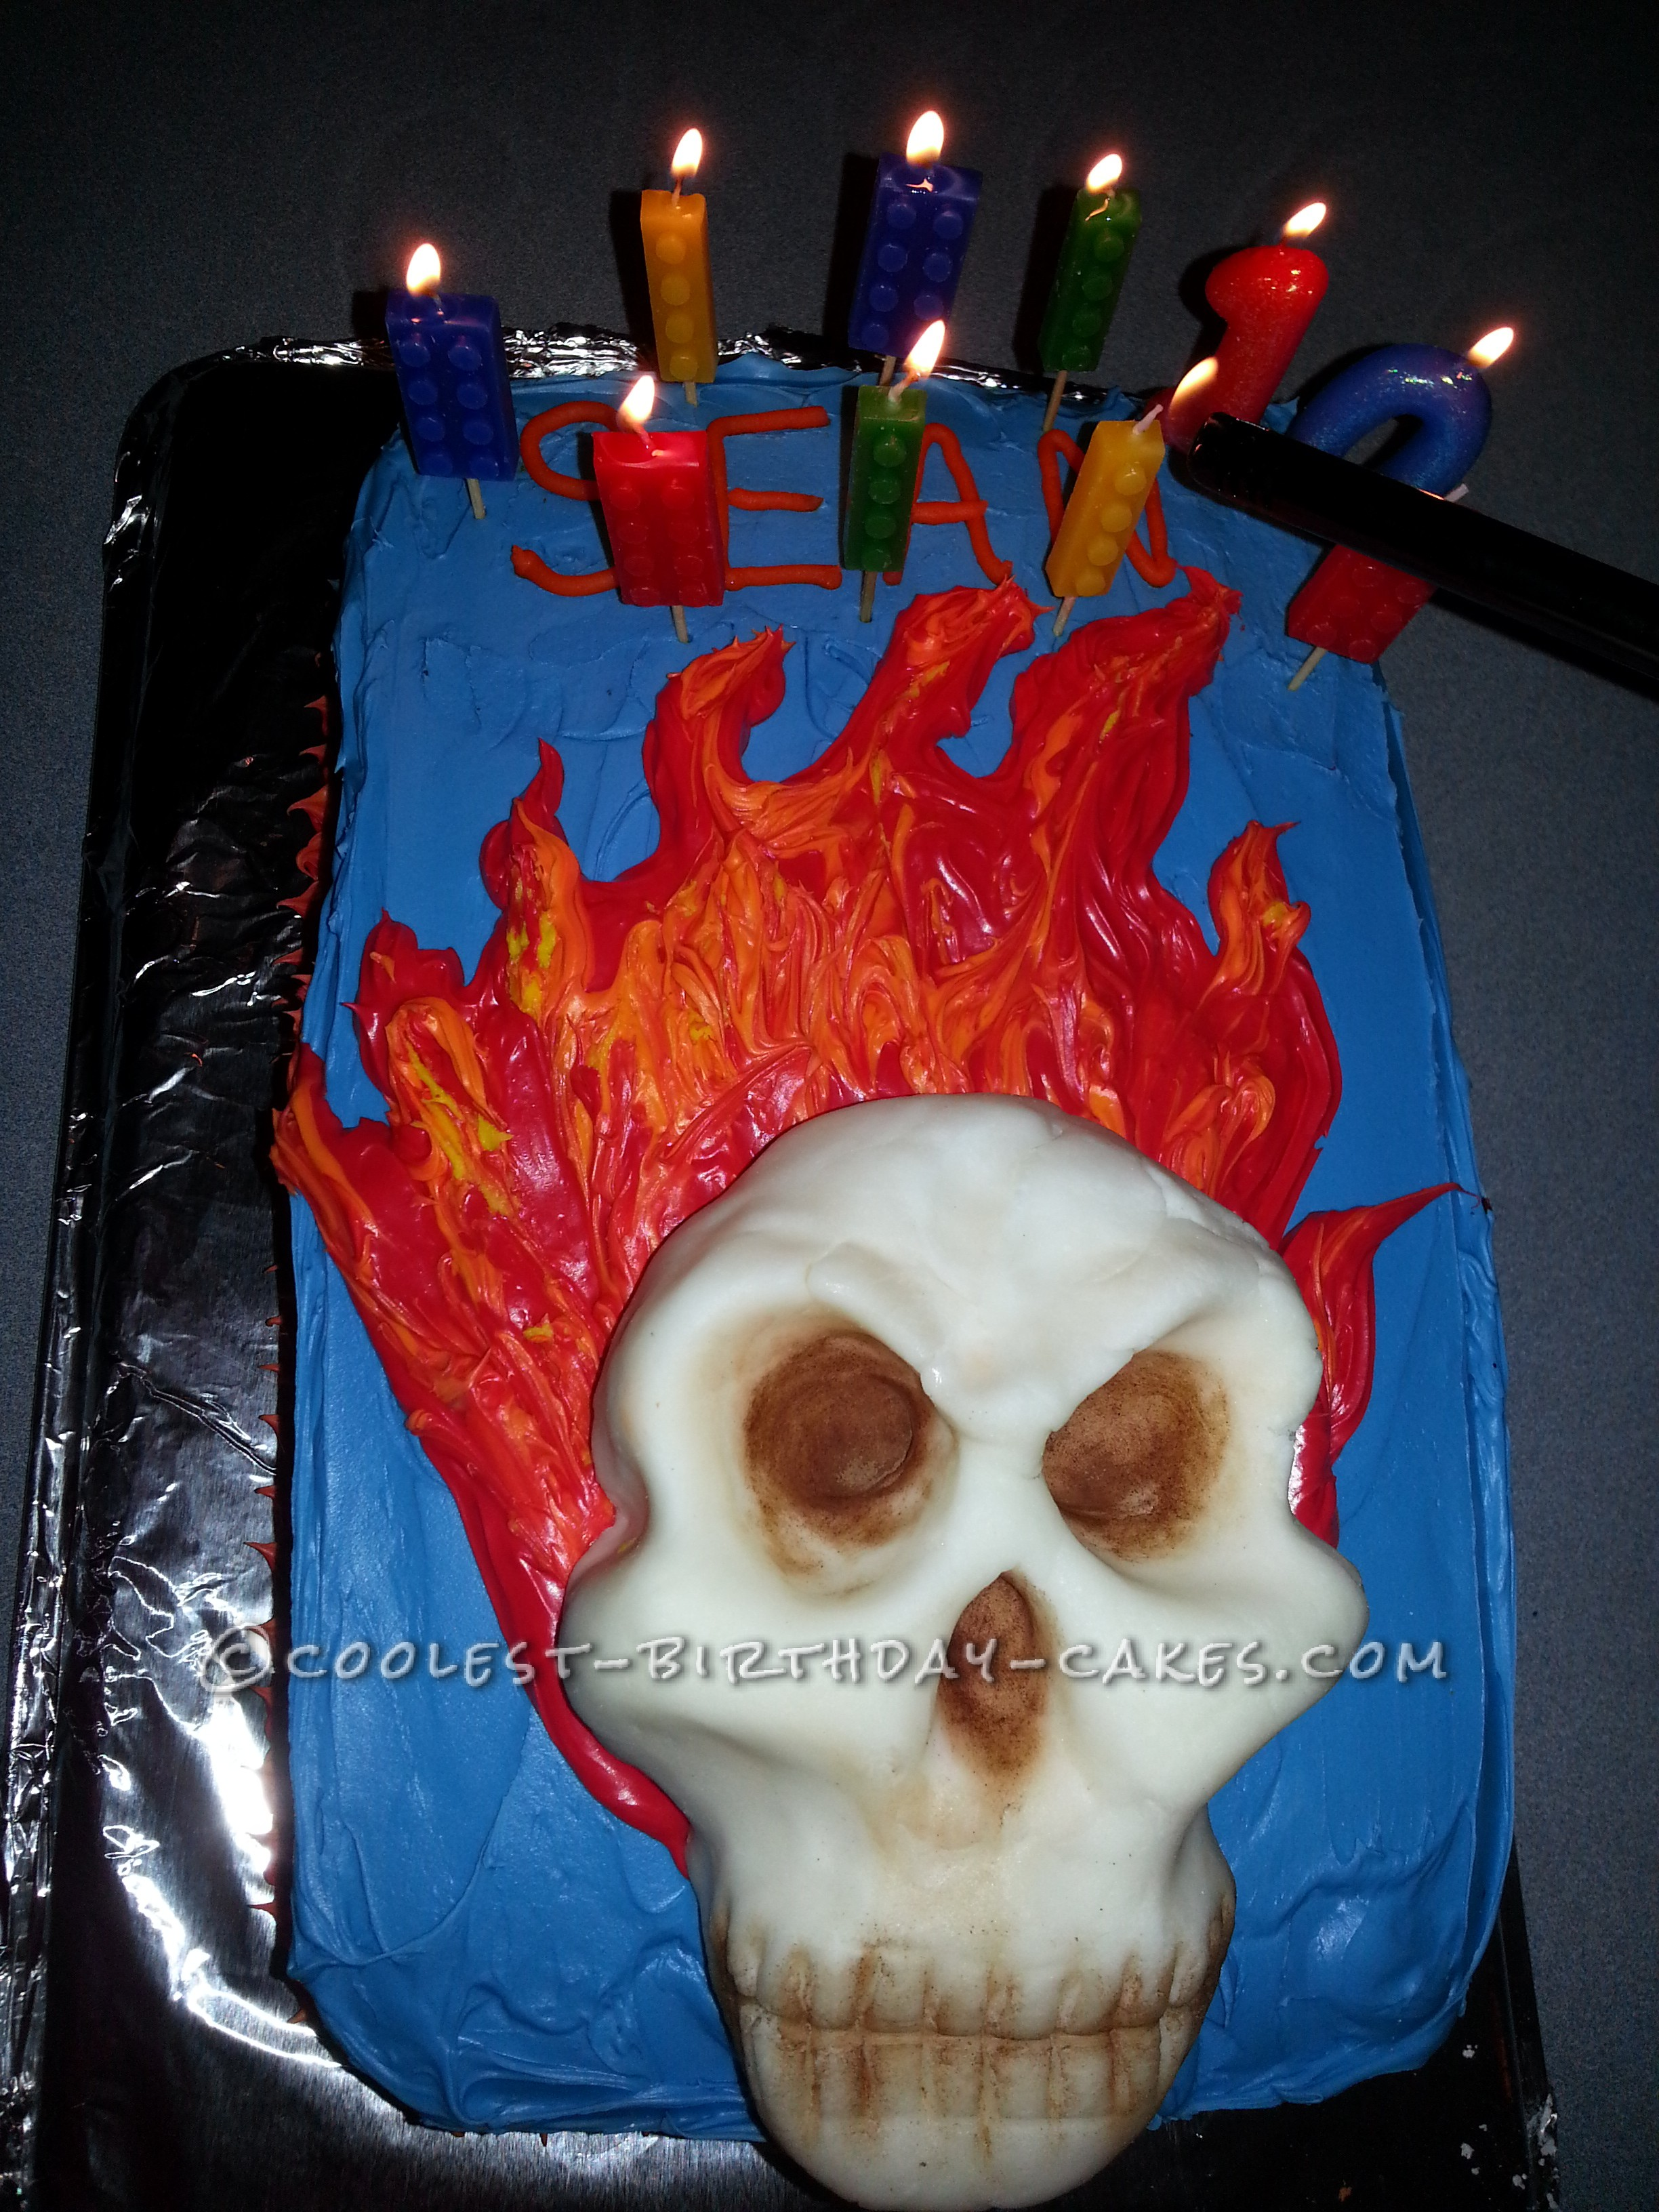 He Just Wanted To Incorporate His Favorite Colors Orange And Blue Cool Stuff Like Skulls Flames Into 10th Birthday Party Cake